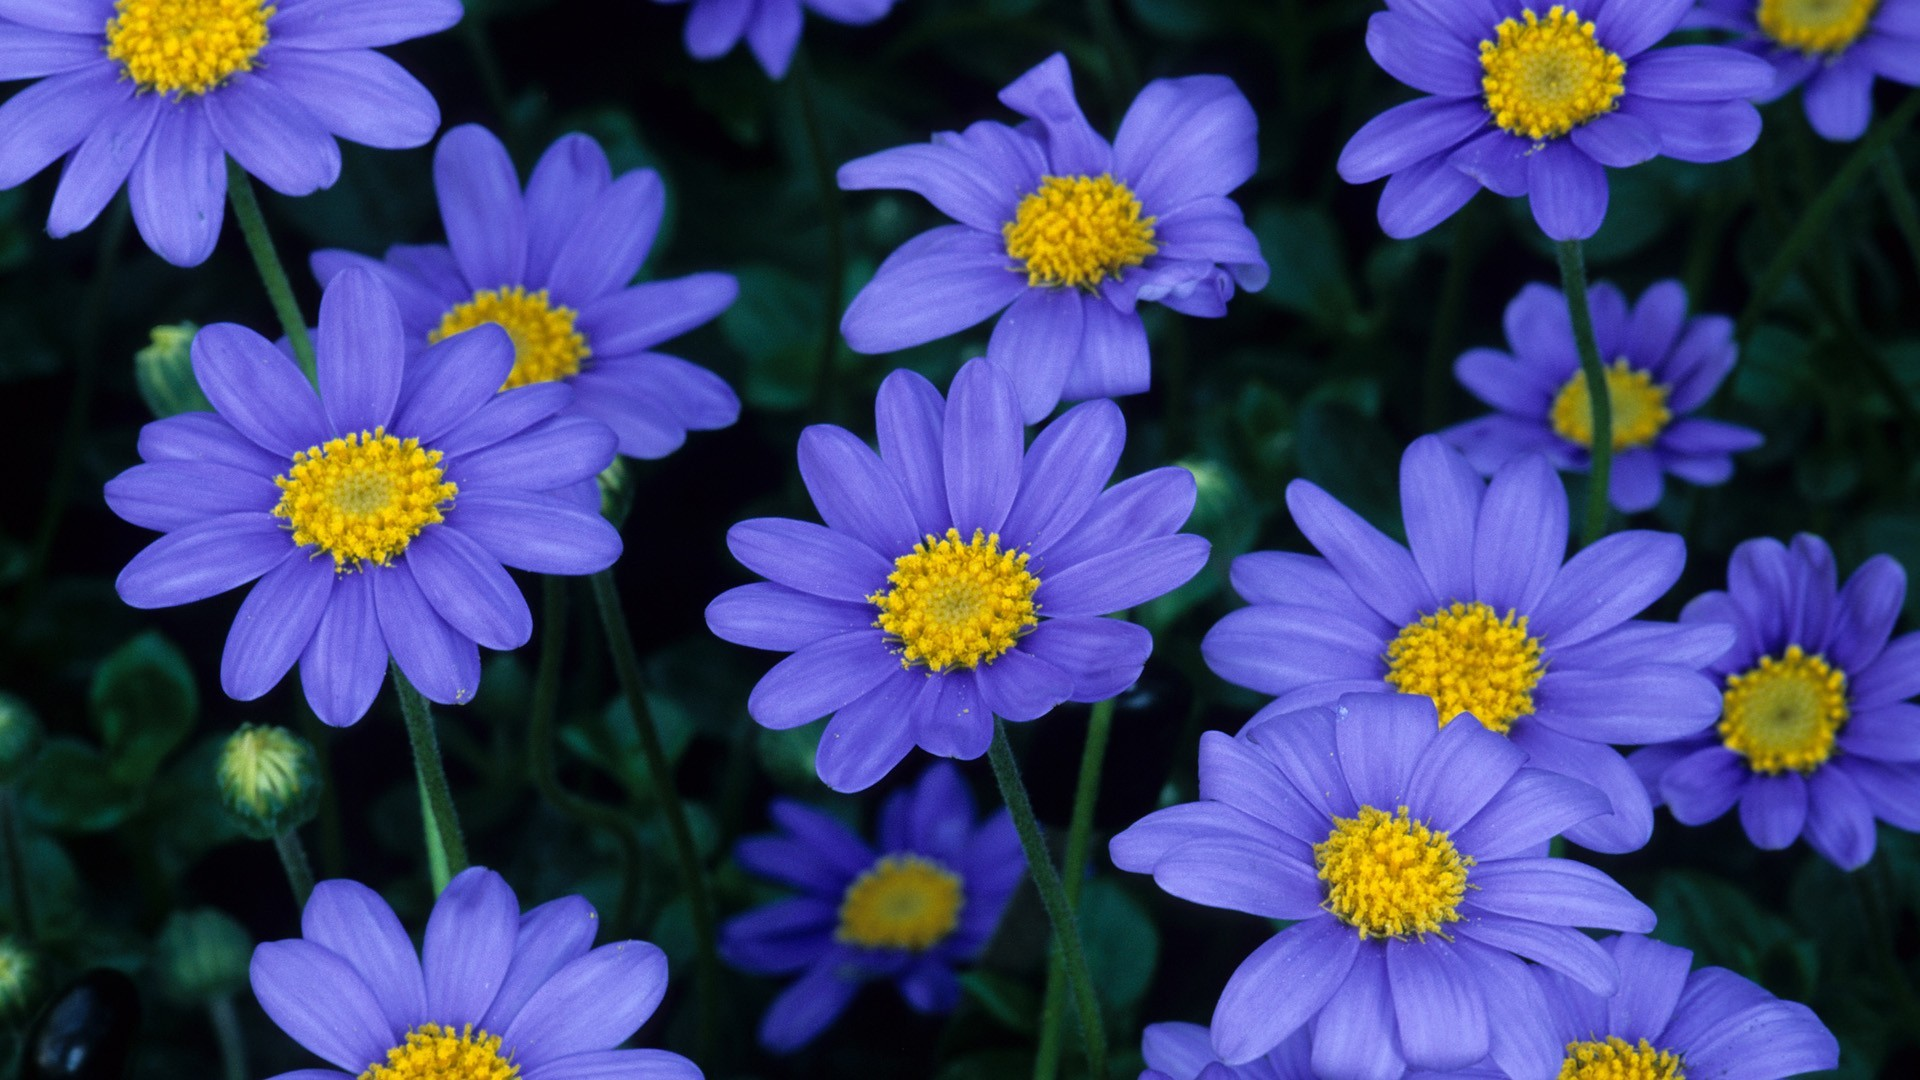 1920x1080 Pretty Blue Flowers Images Flower Meanings - HD Wallpapers